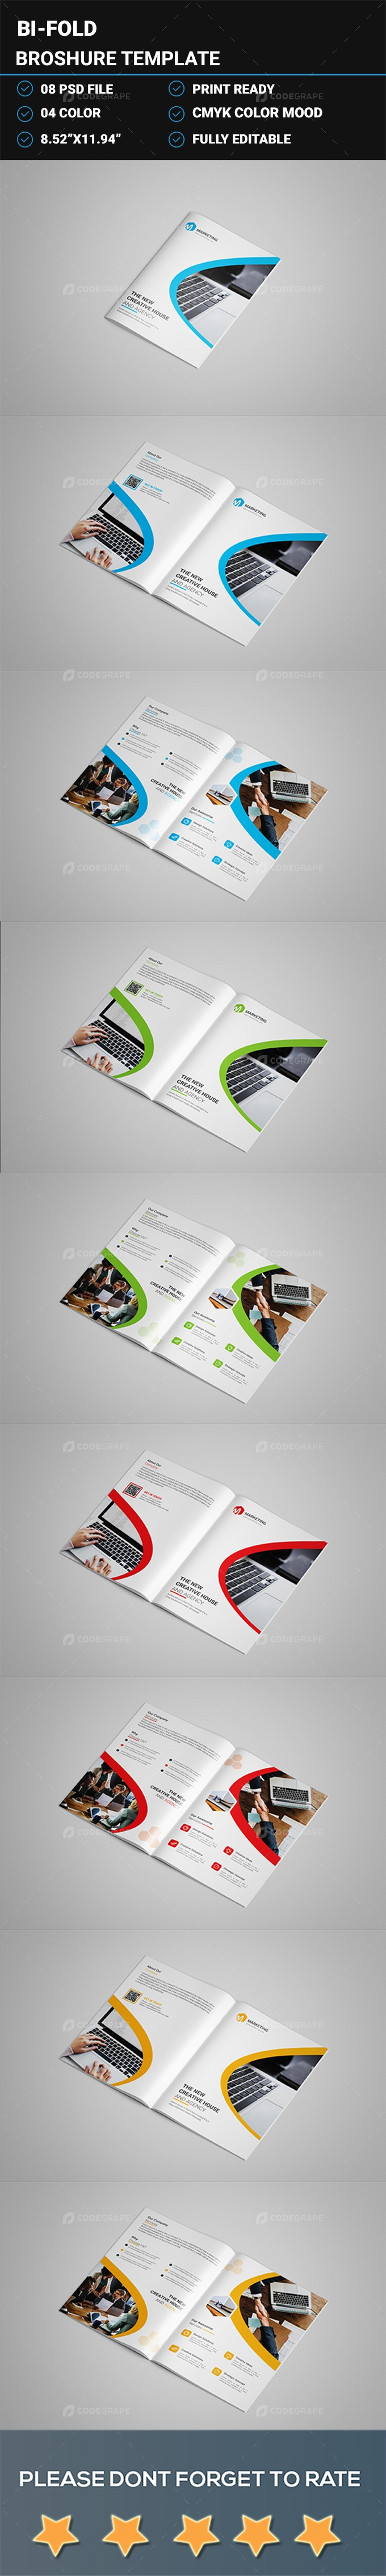 Bifold Brochure Design